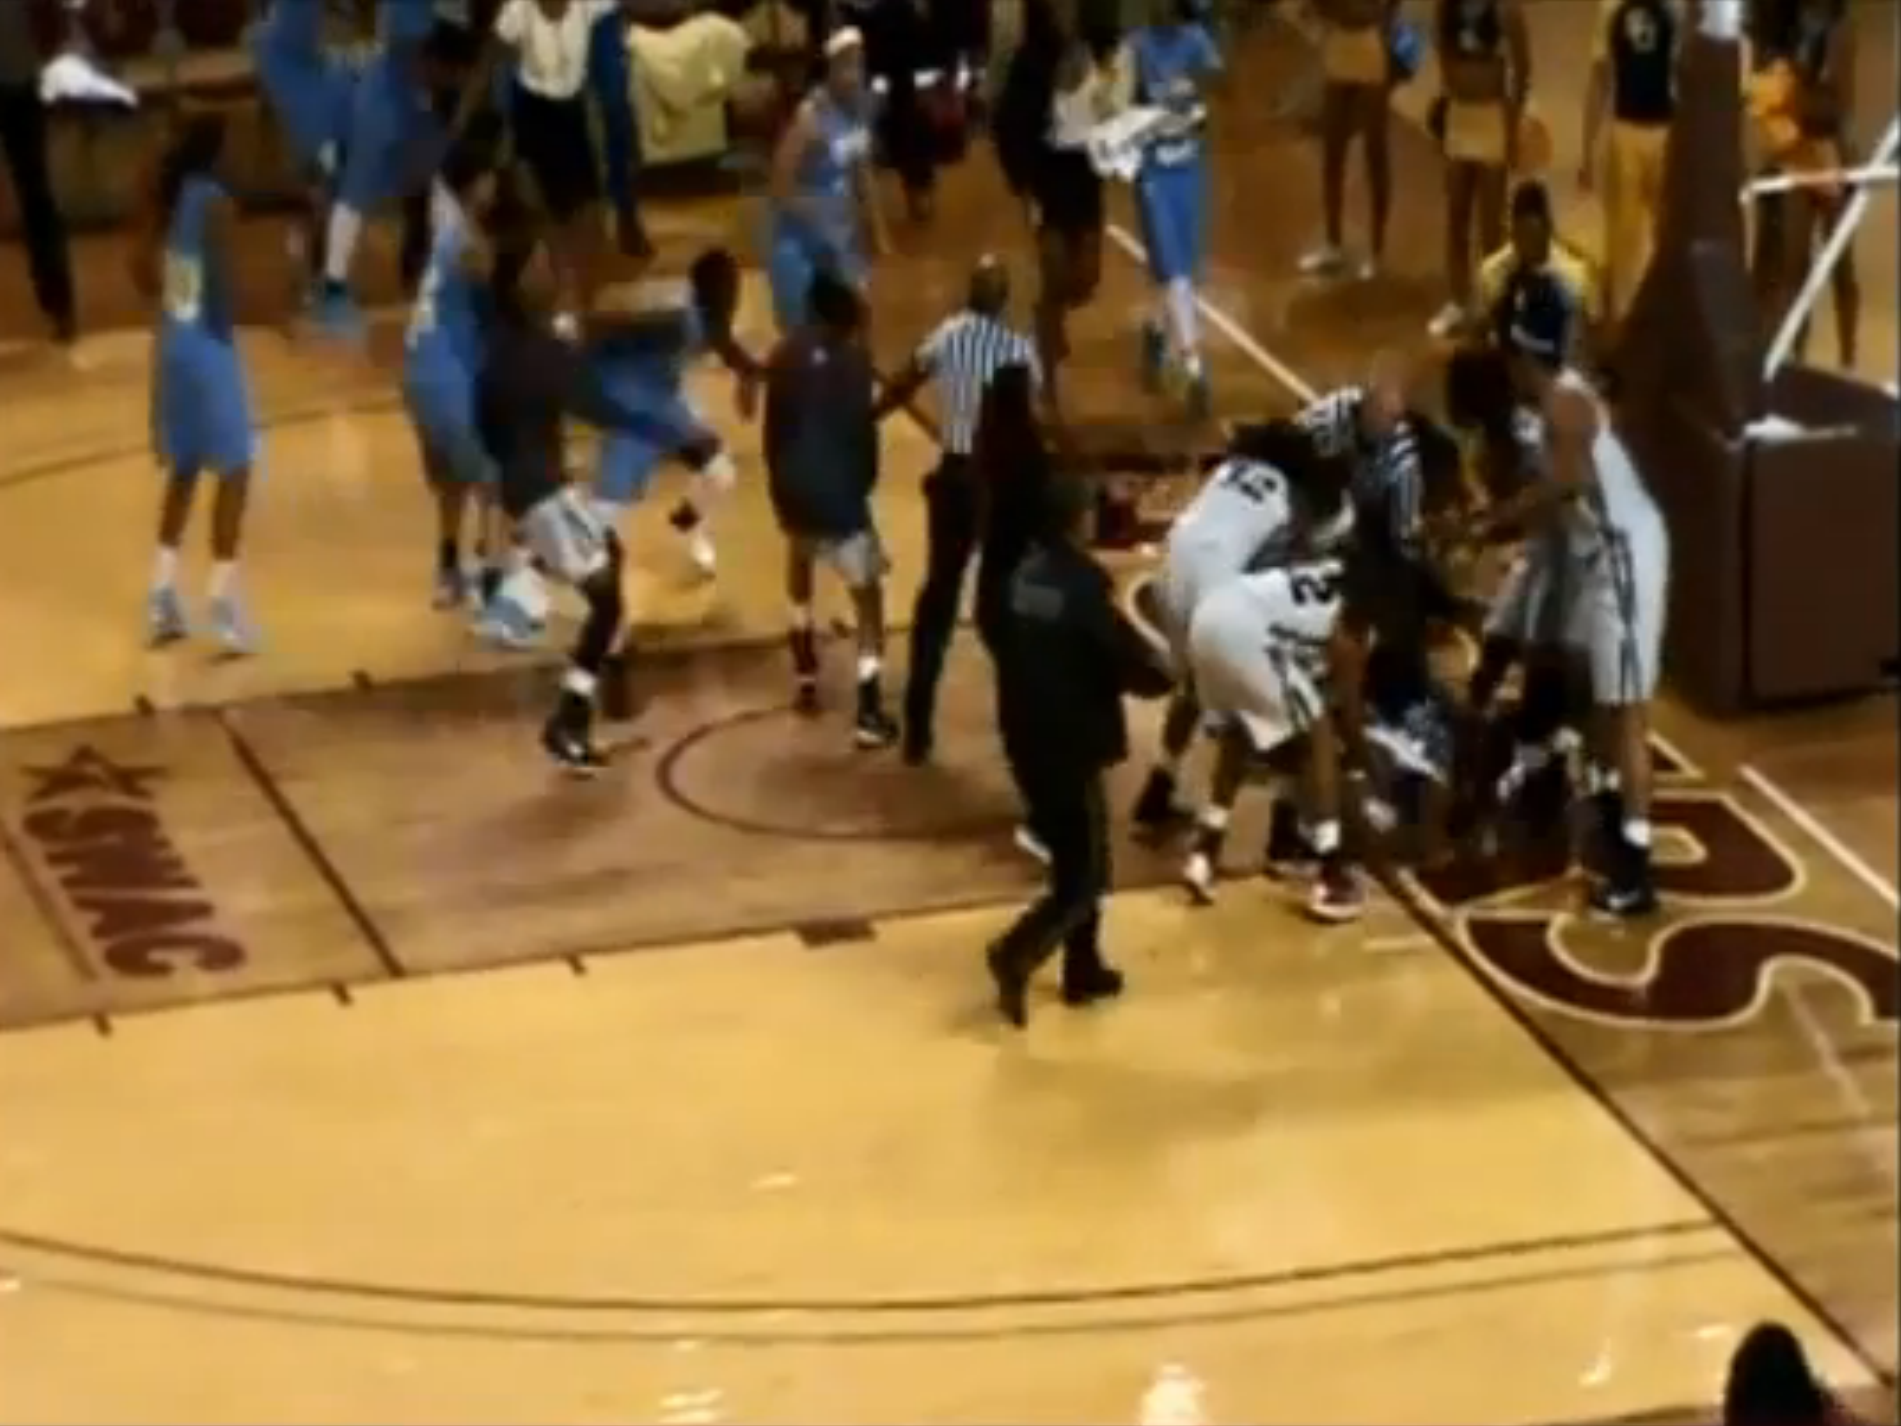 Women's College Basketball Game Erupts Into Brawl